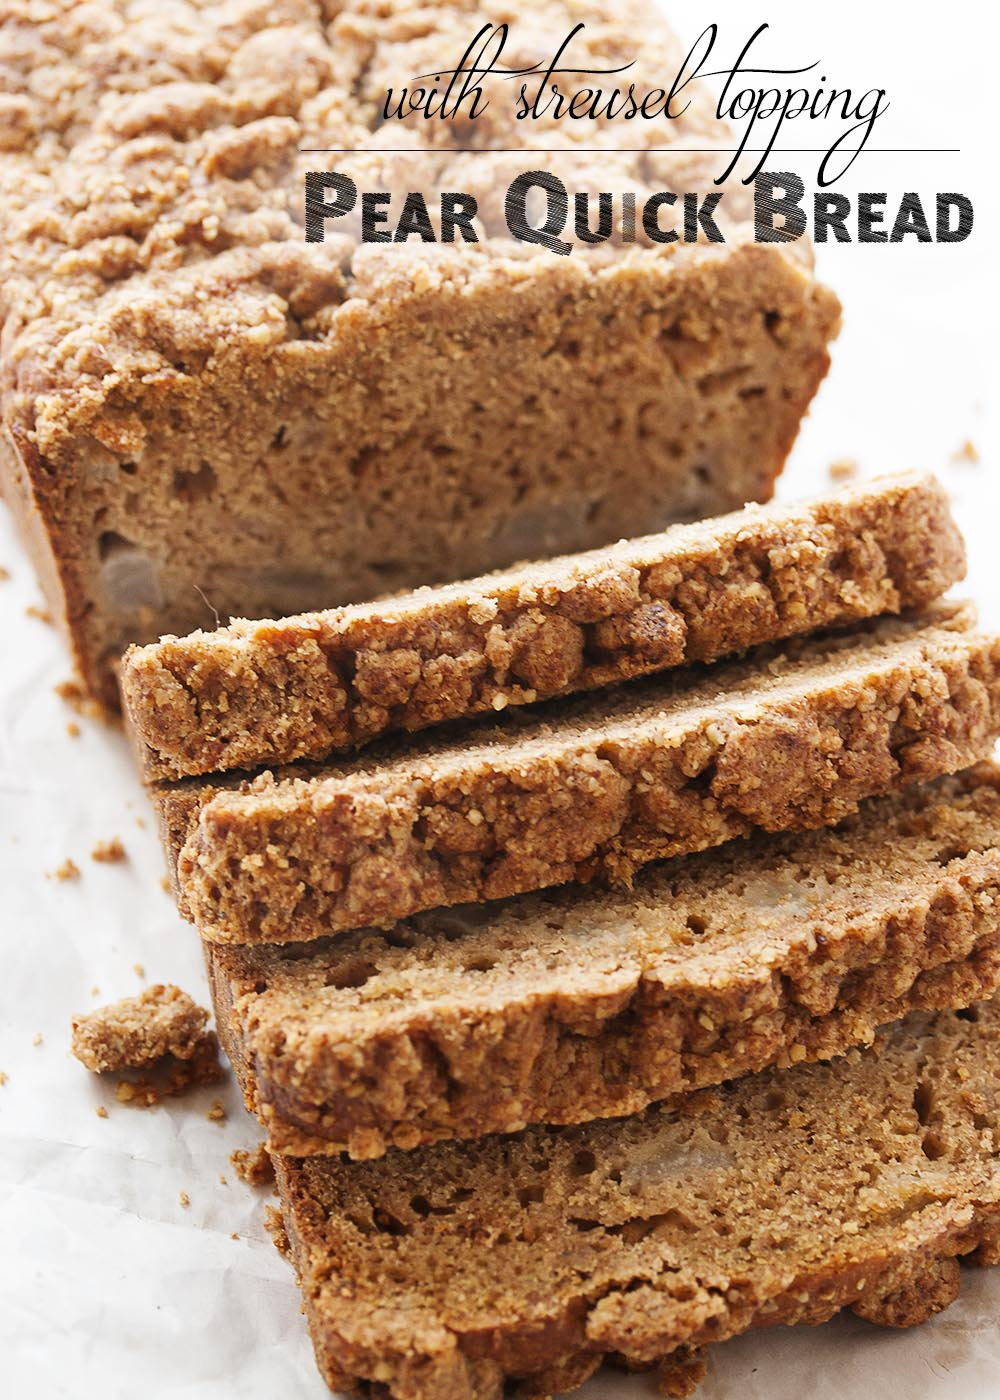 Pear Quick Bread with Streusel Topping - What to do with those overripe pears sitting on your counter? Make an easy pear quick bread from them! Great for breakfast, for snacks, and it freezes well. | justalittlebitofbacon.com